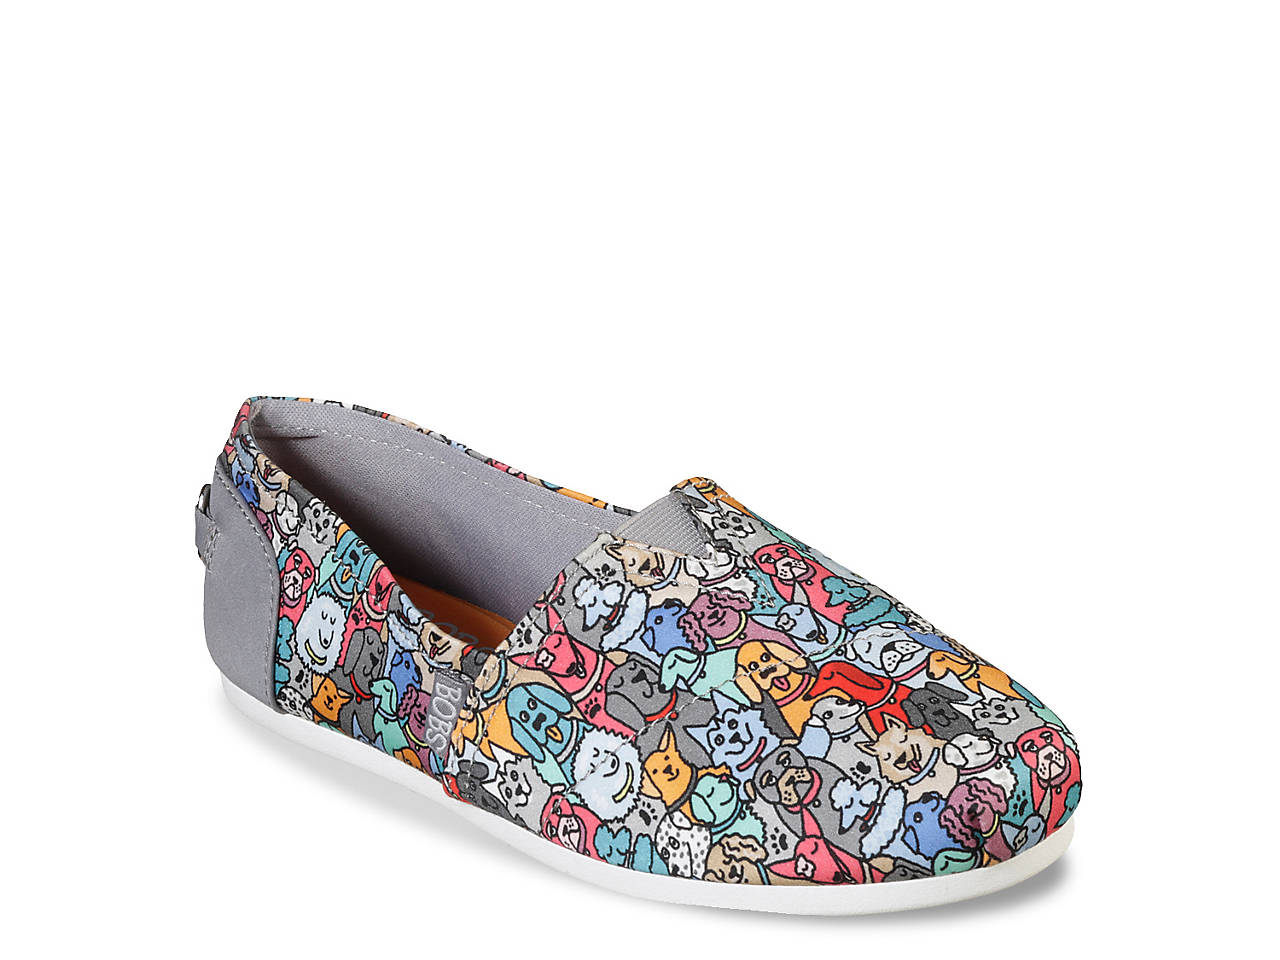 a8cbc8daabb9 BOBS from Skechers Plush Woof Party Slip-On Women s Shoes